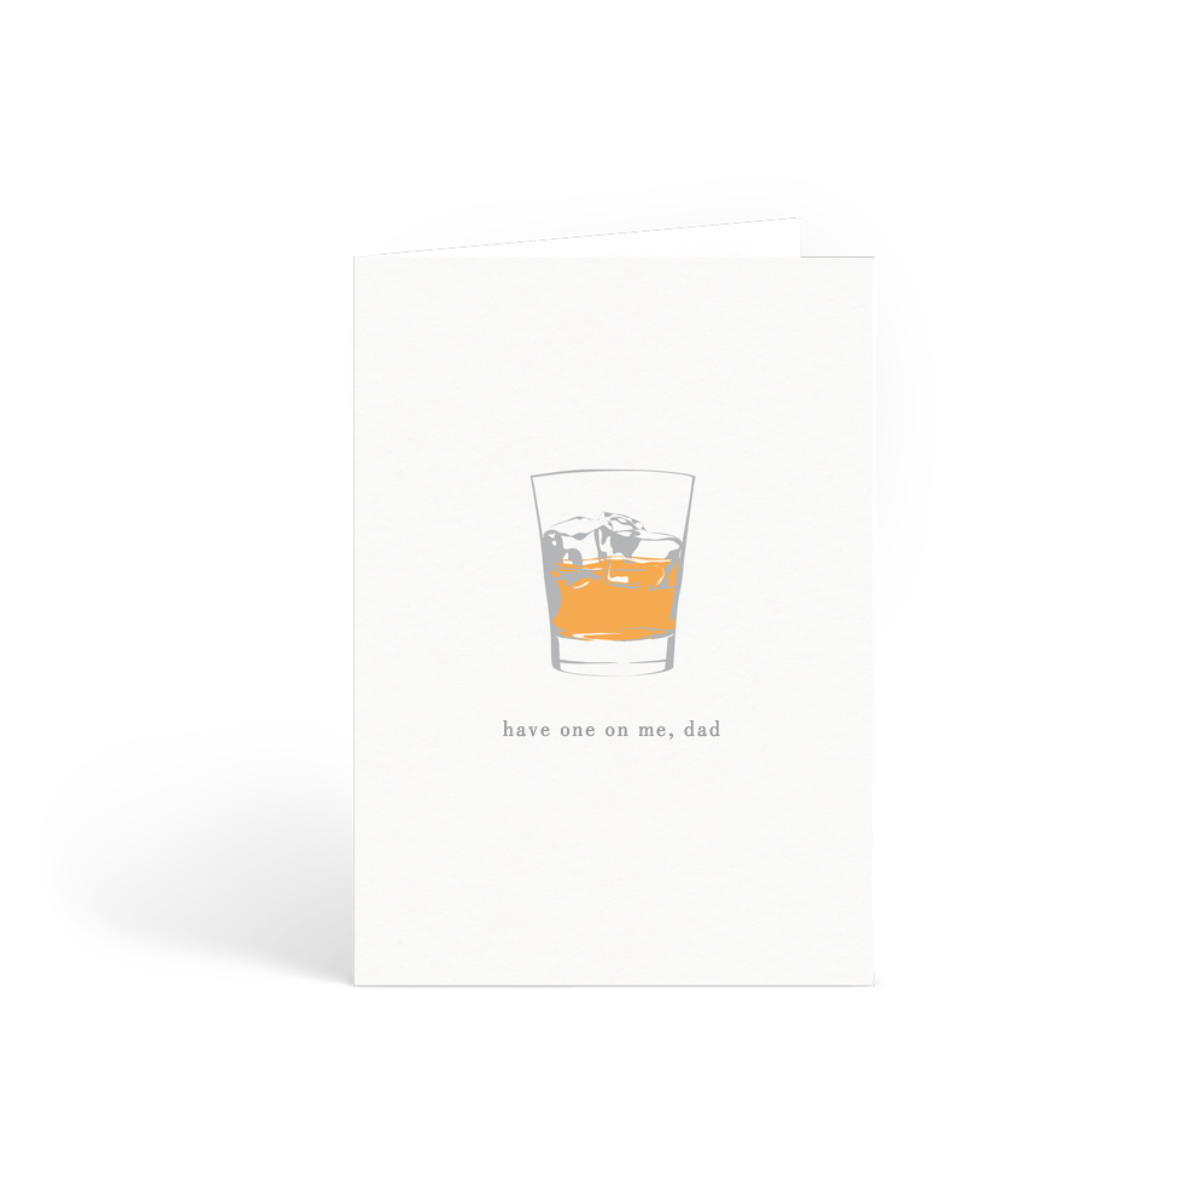 Https%3a%2f%2fwww.papier.com%2fproduct image%2f5074%2f2%2ffather s day whiskey 1320 avant 1458150405.png?ixlib=rb 1.1